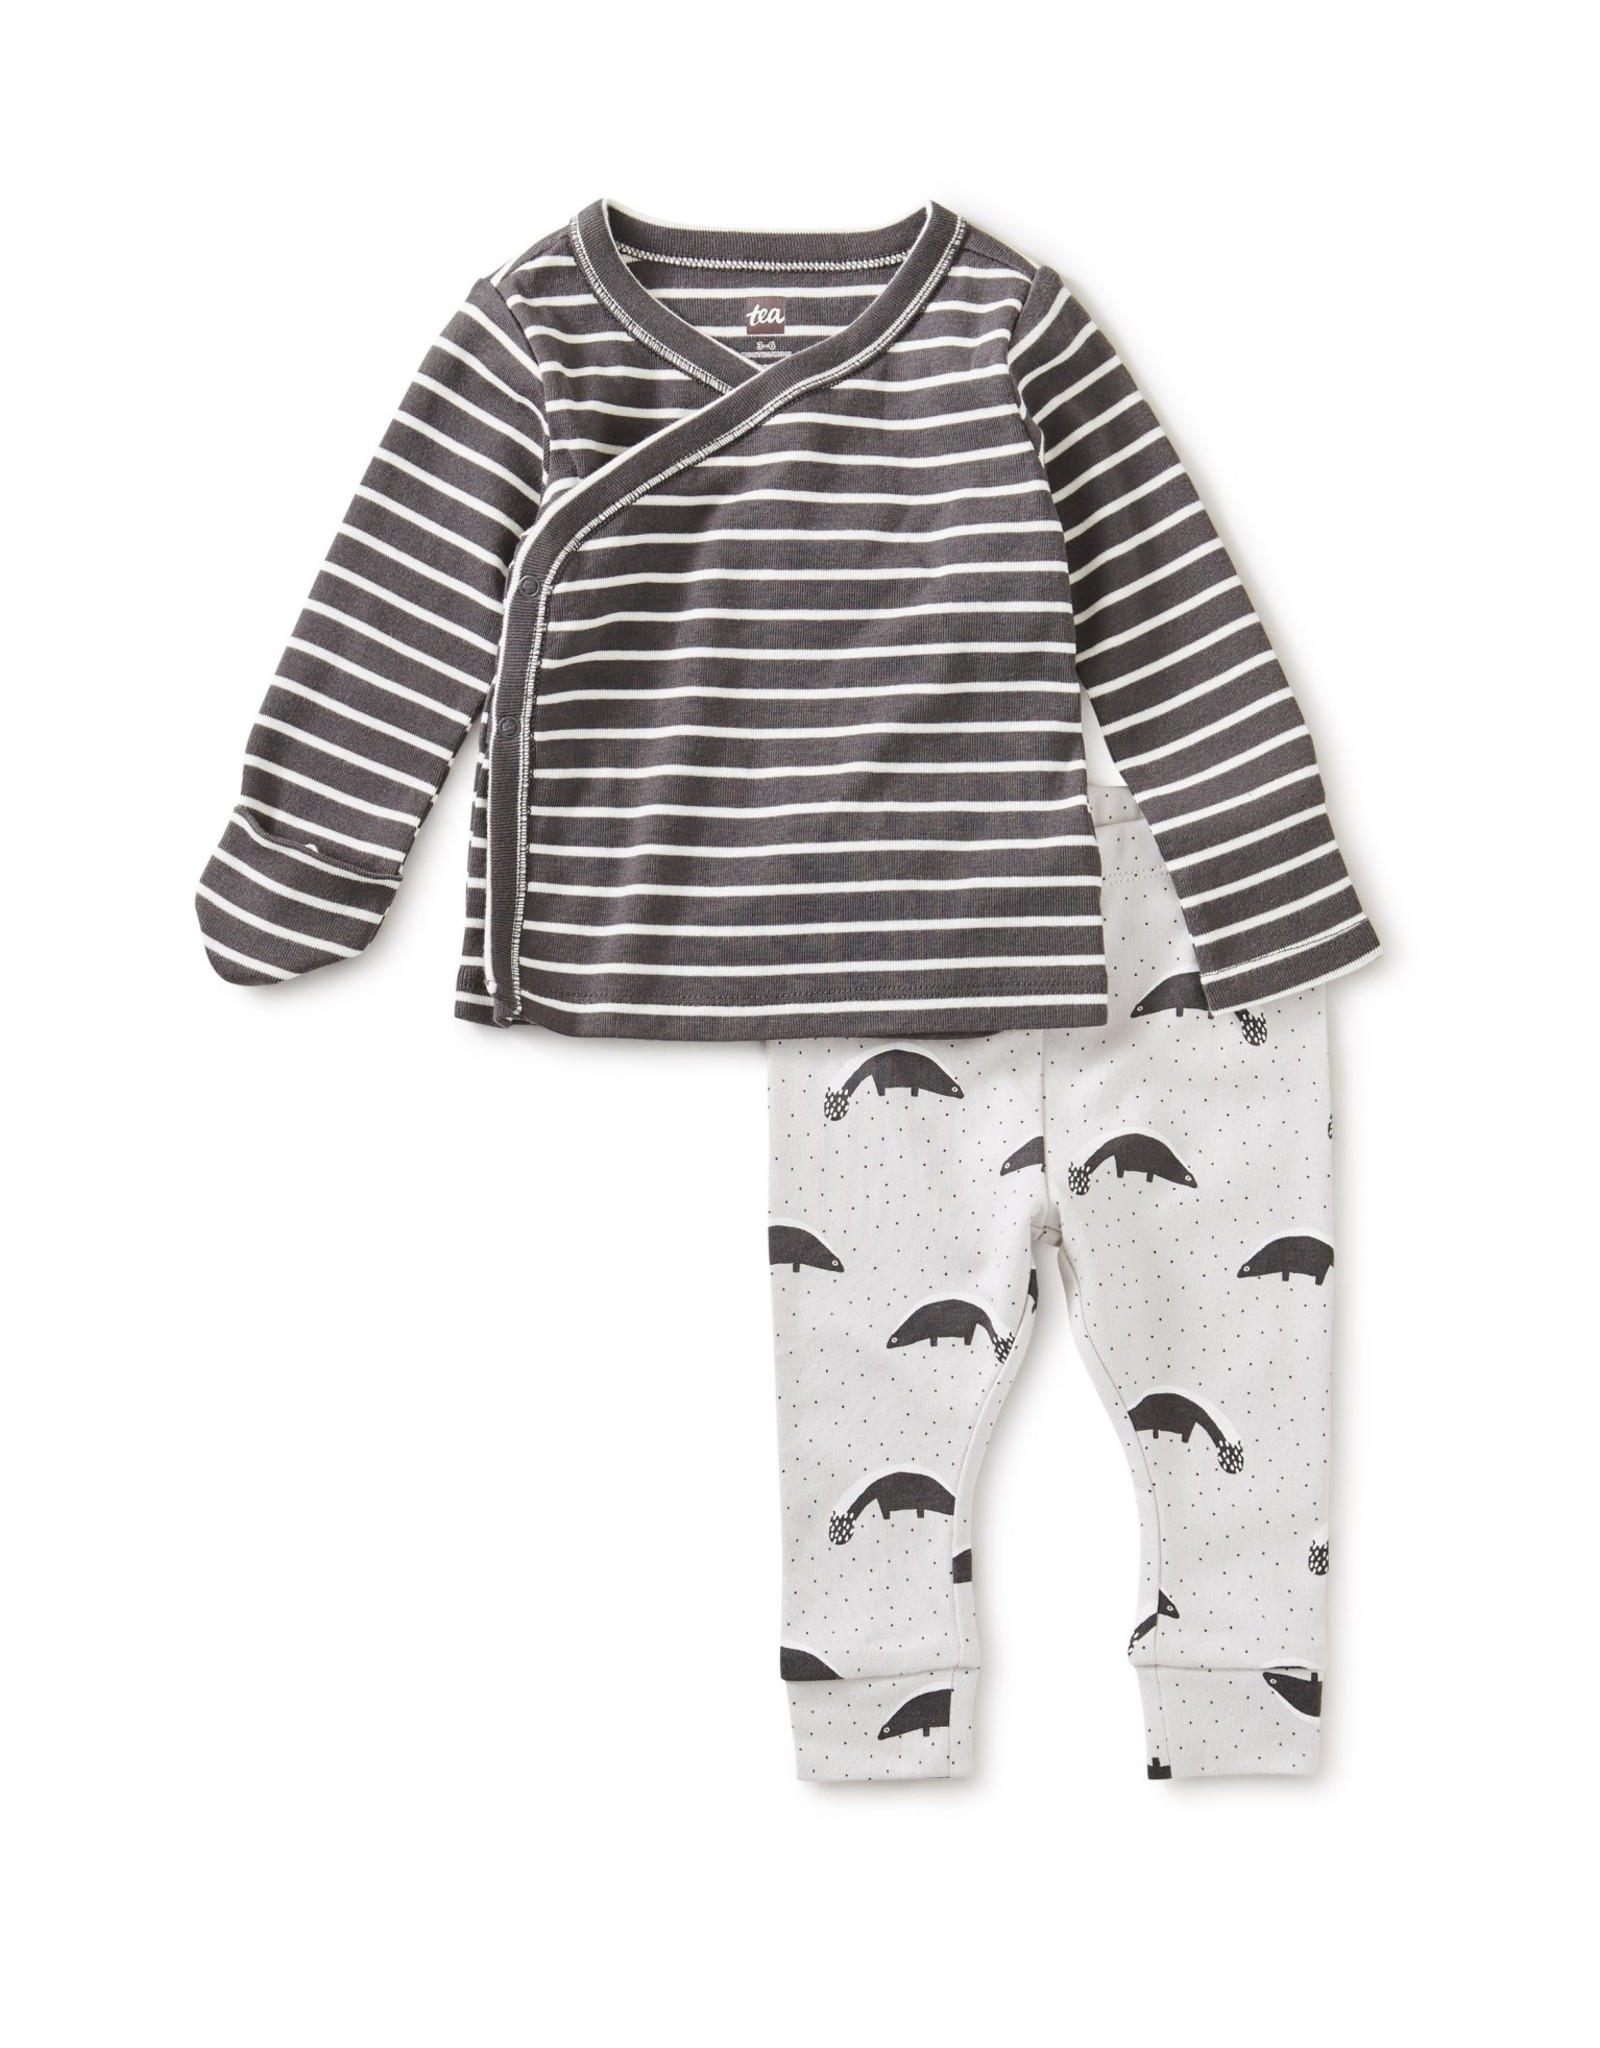 Tea Wrap Top Baby Outfit, Skunk Pepper